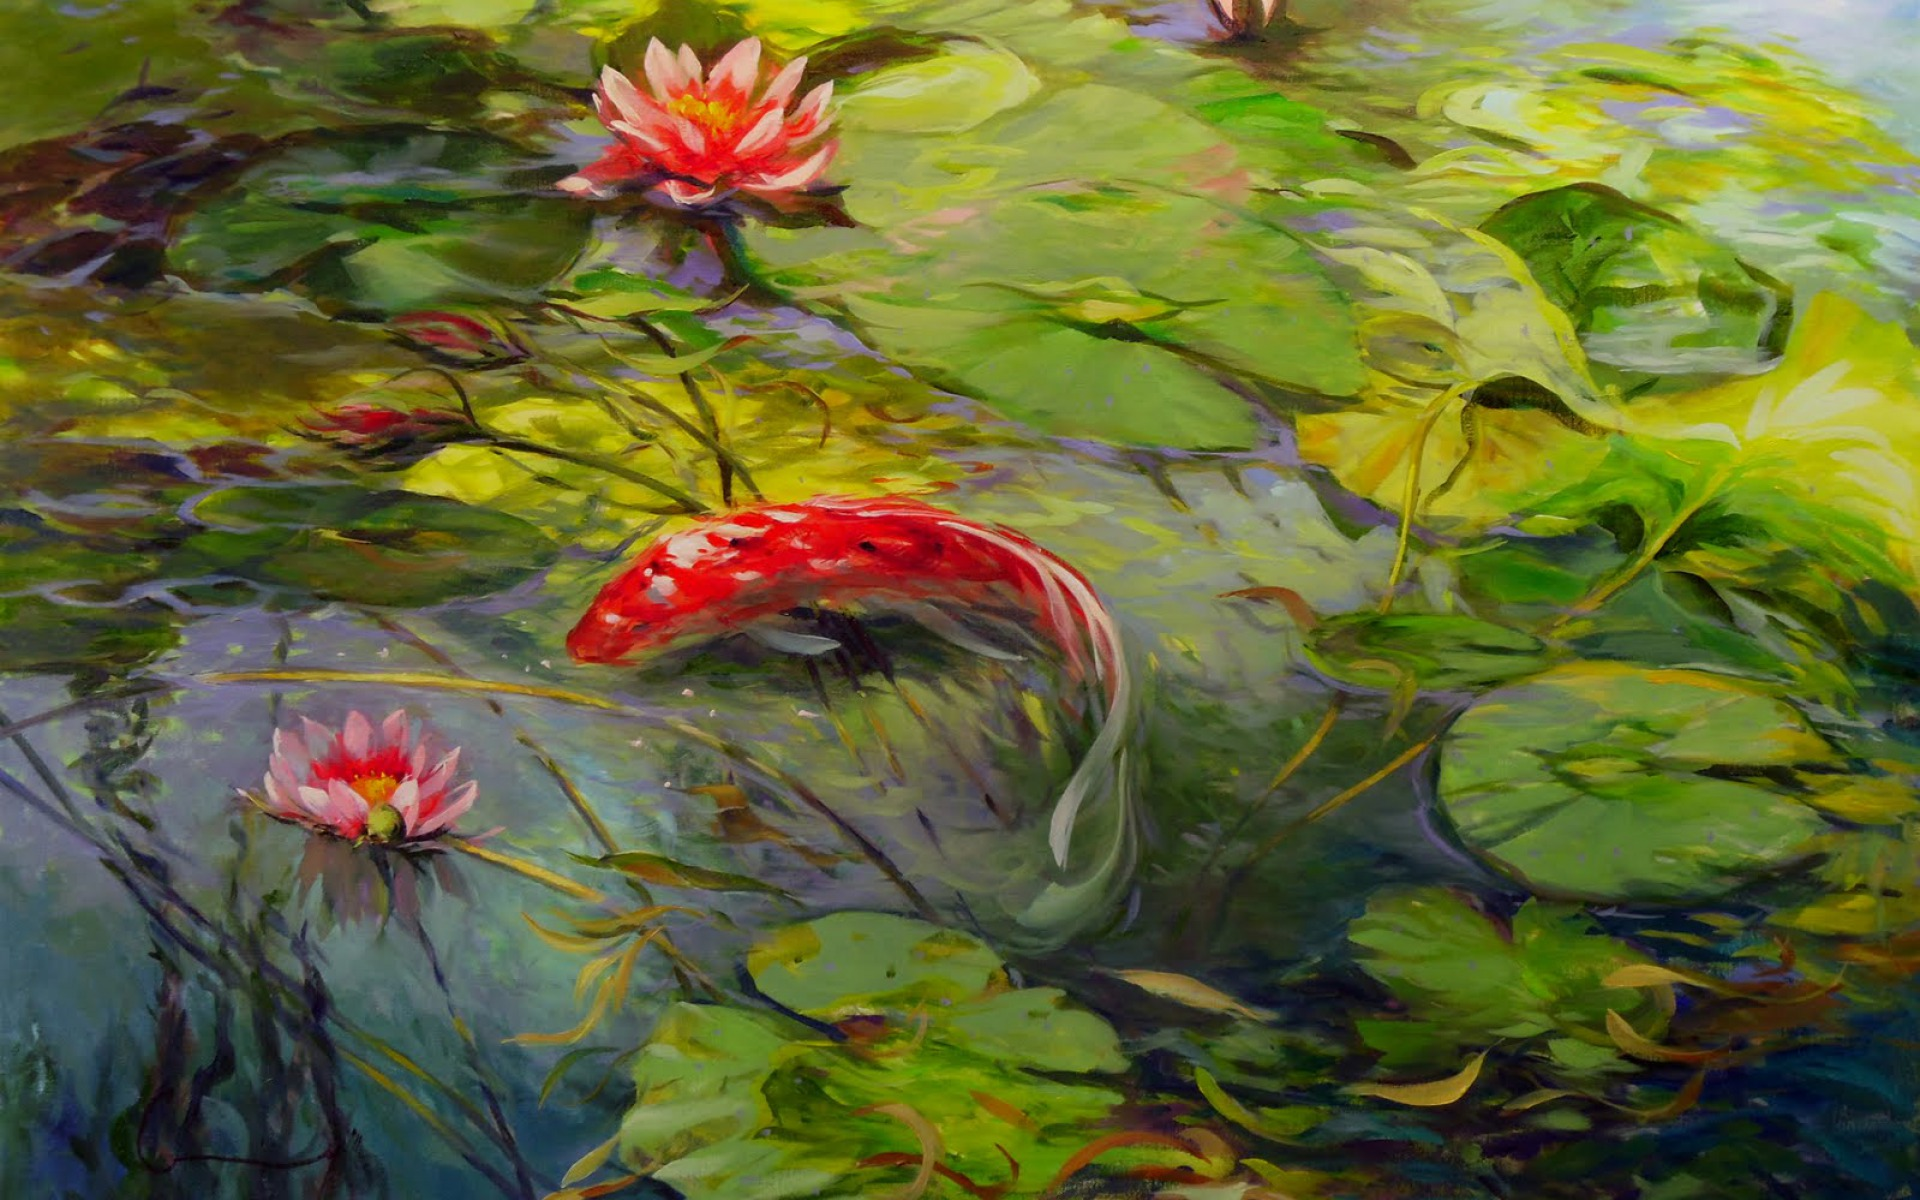 Animated Fish Wallpaper Hd Lovely Koi Lily Pond Wallpapers Lovely Koi Lily Pond